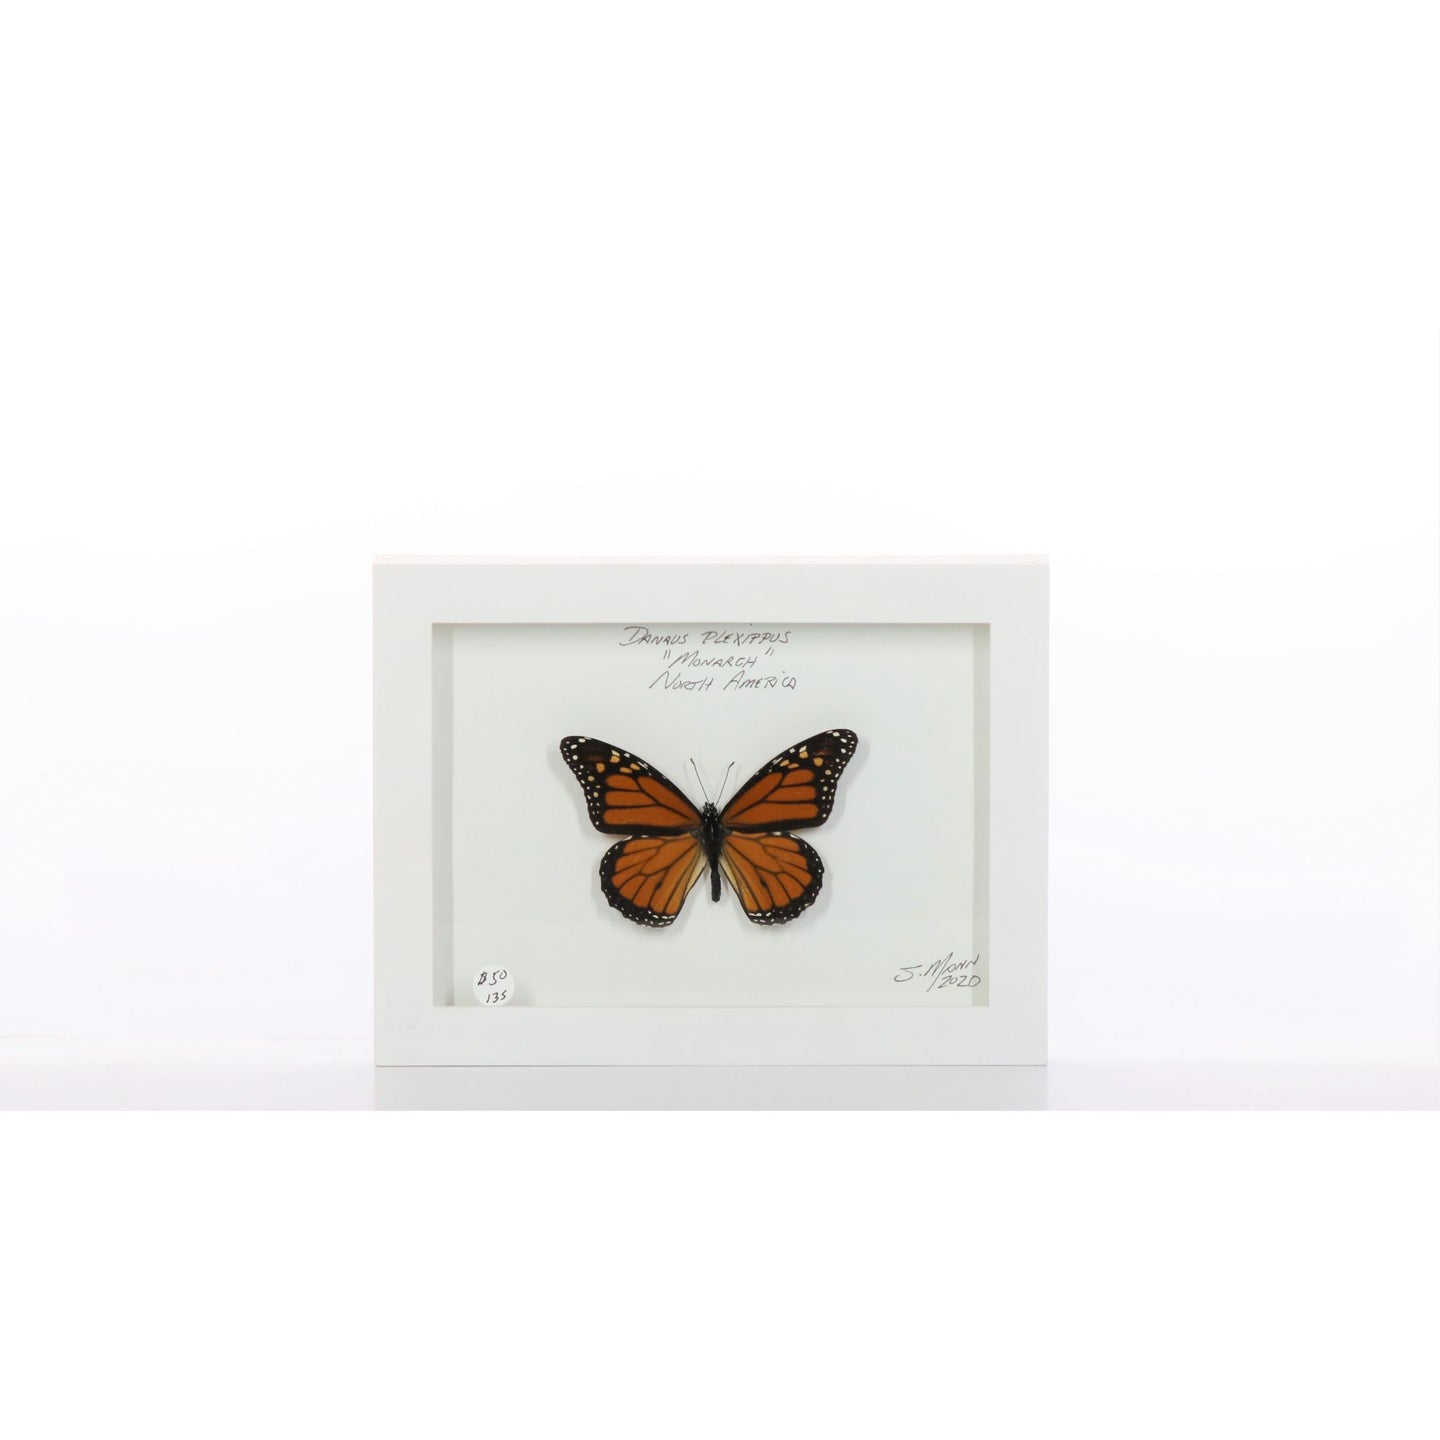 Monarch 5x7 White #135 Framed Art - Insecta Etcetera